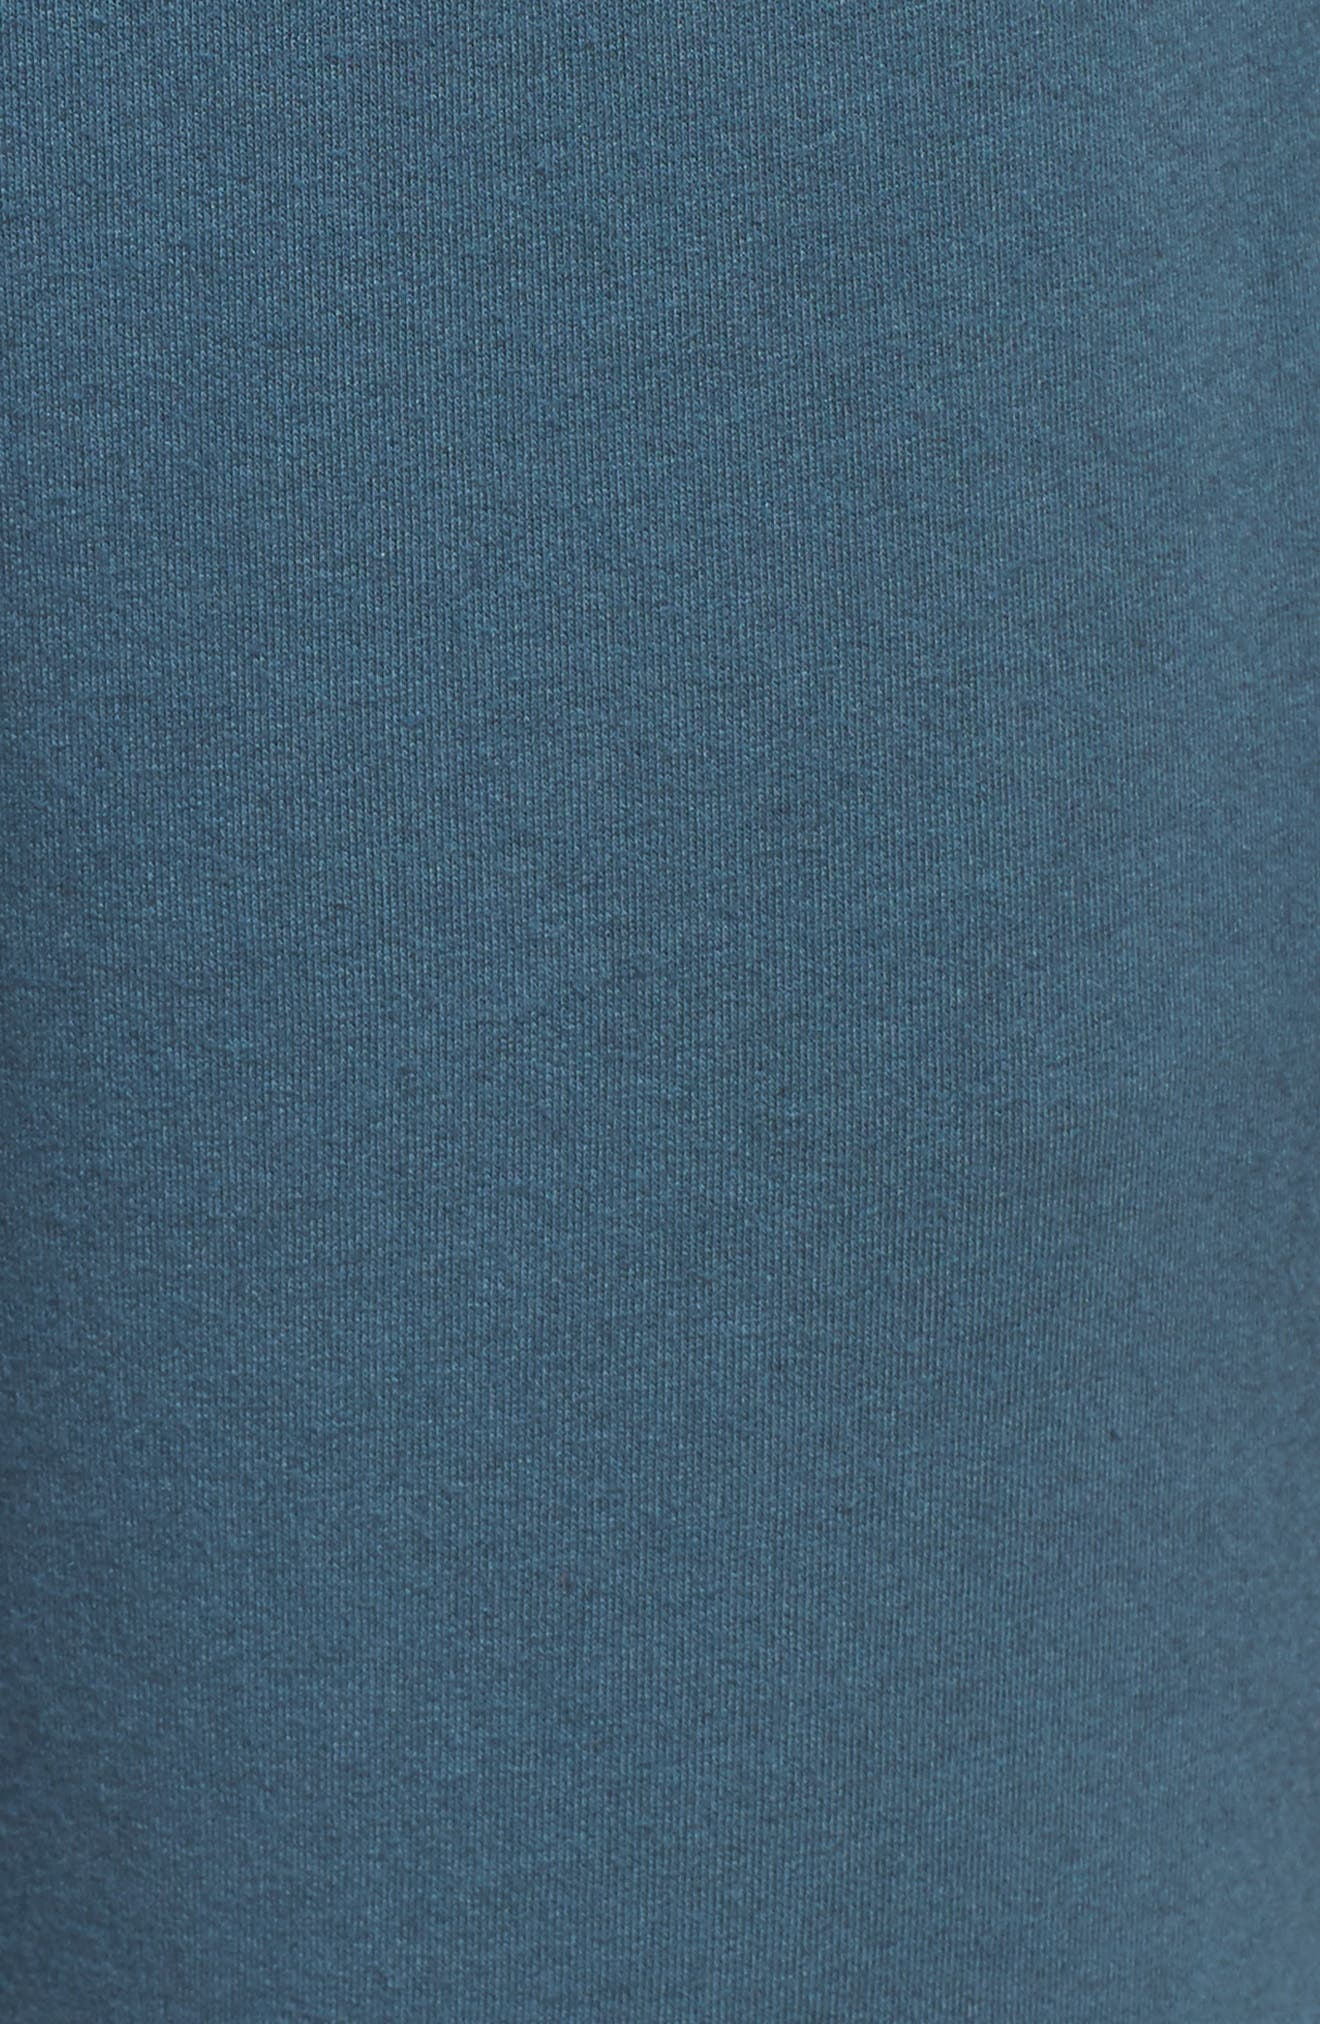 French Terry Sweatpants,                             Alternate thumbnail 6, color,                             Royal Teal